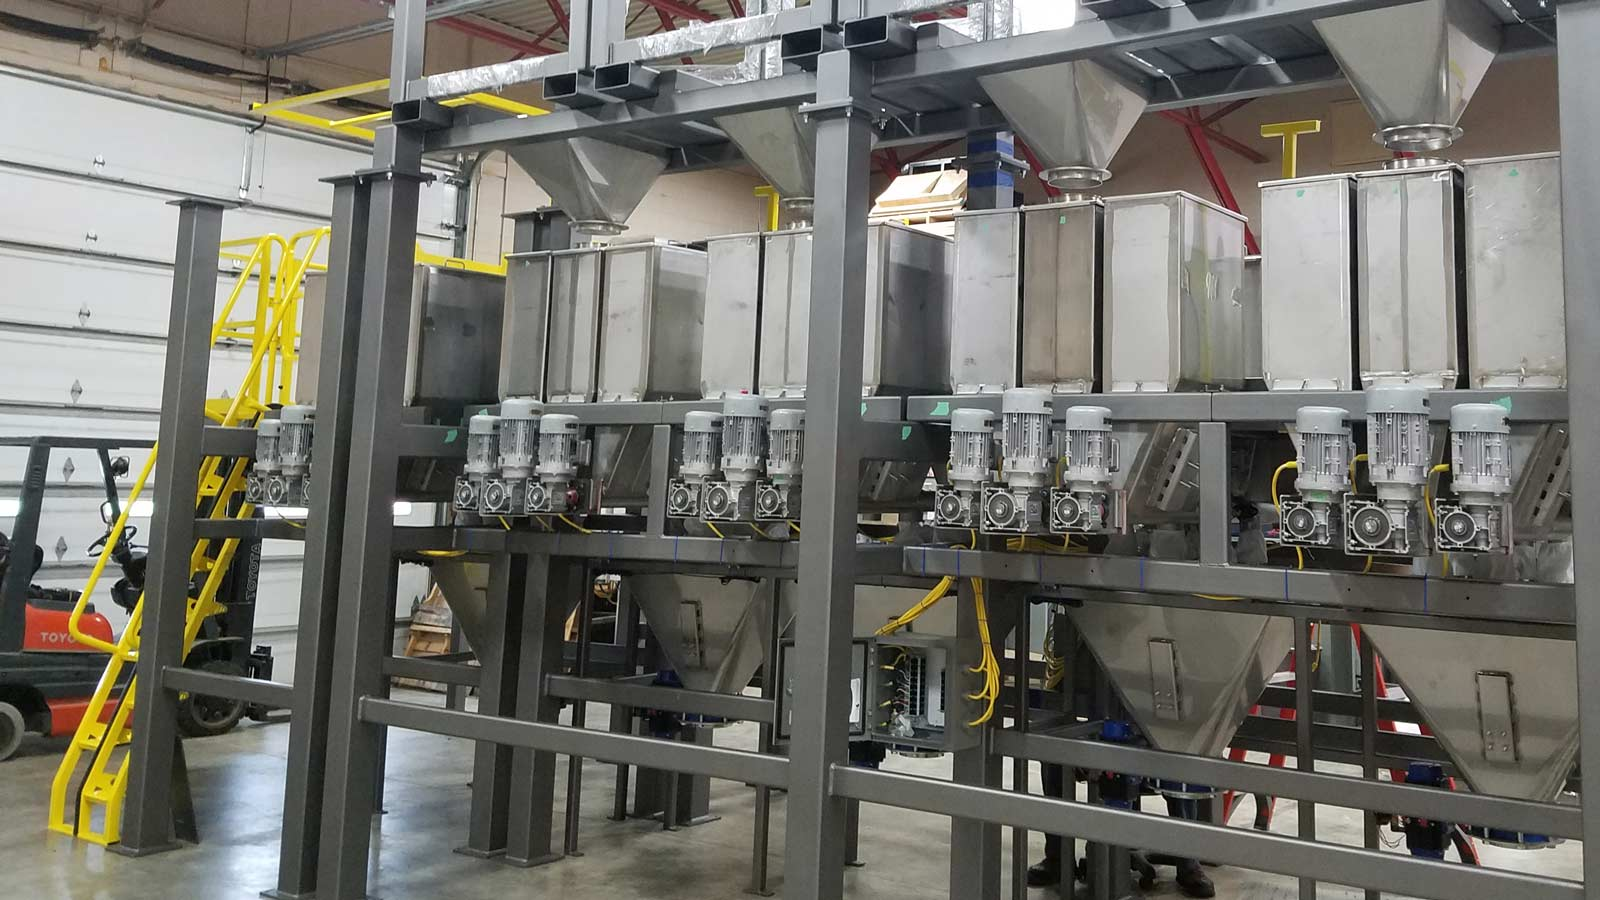 Weighing System With Bulk Bags